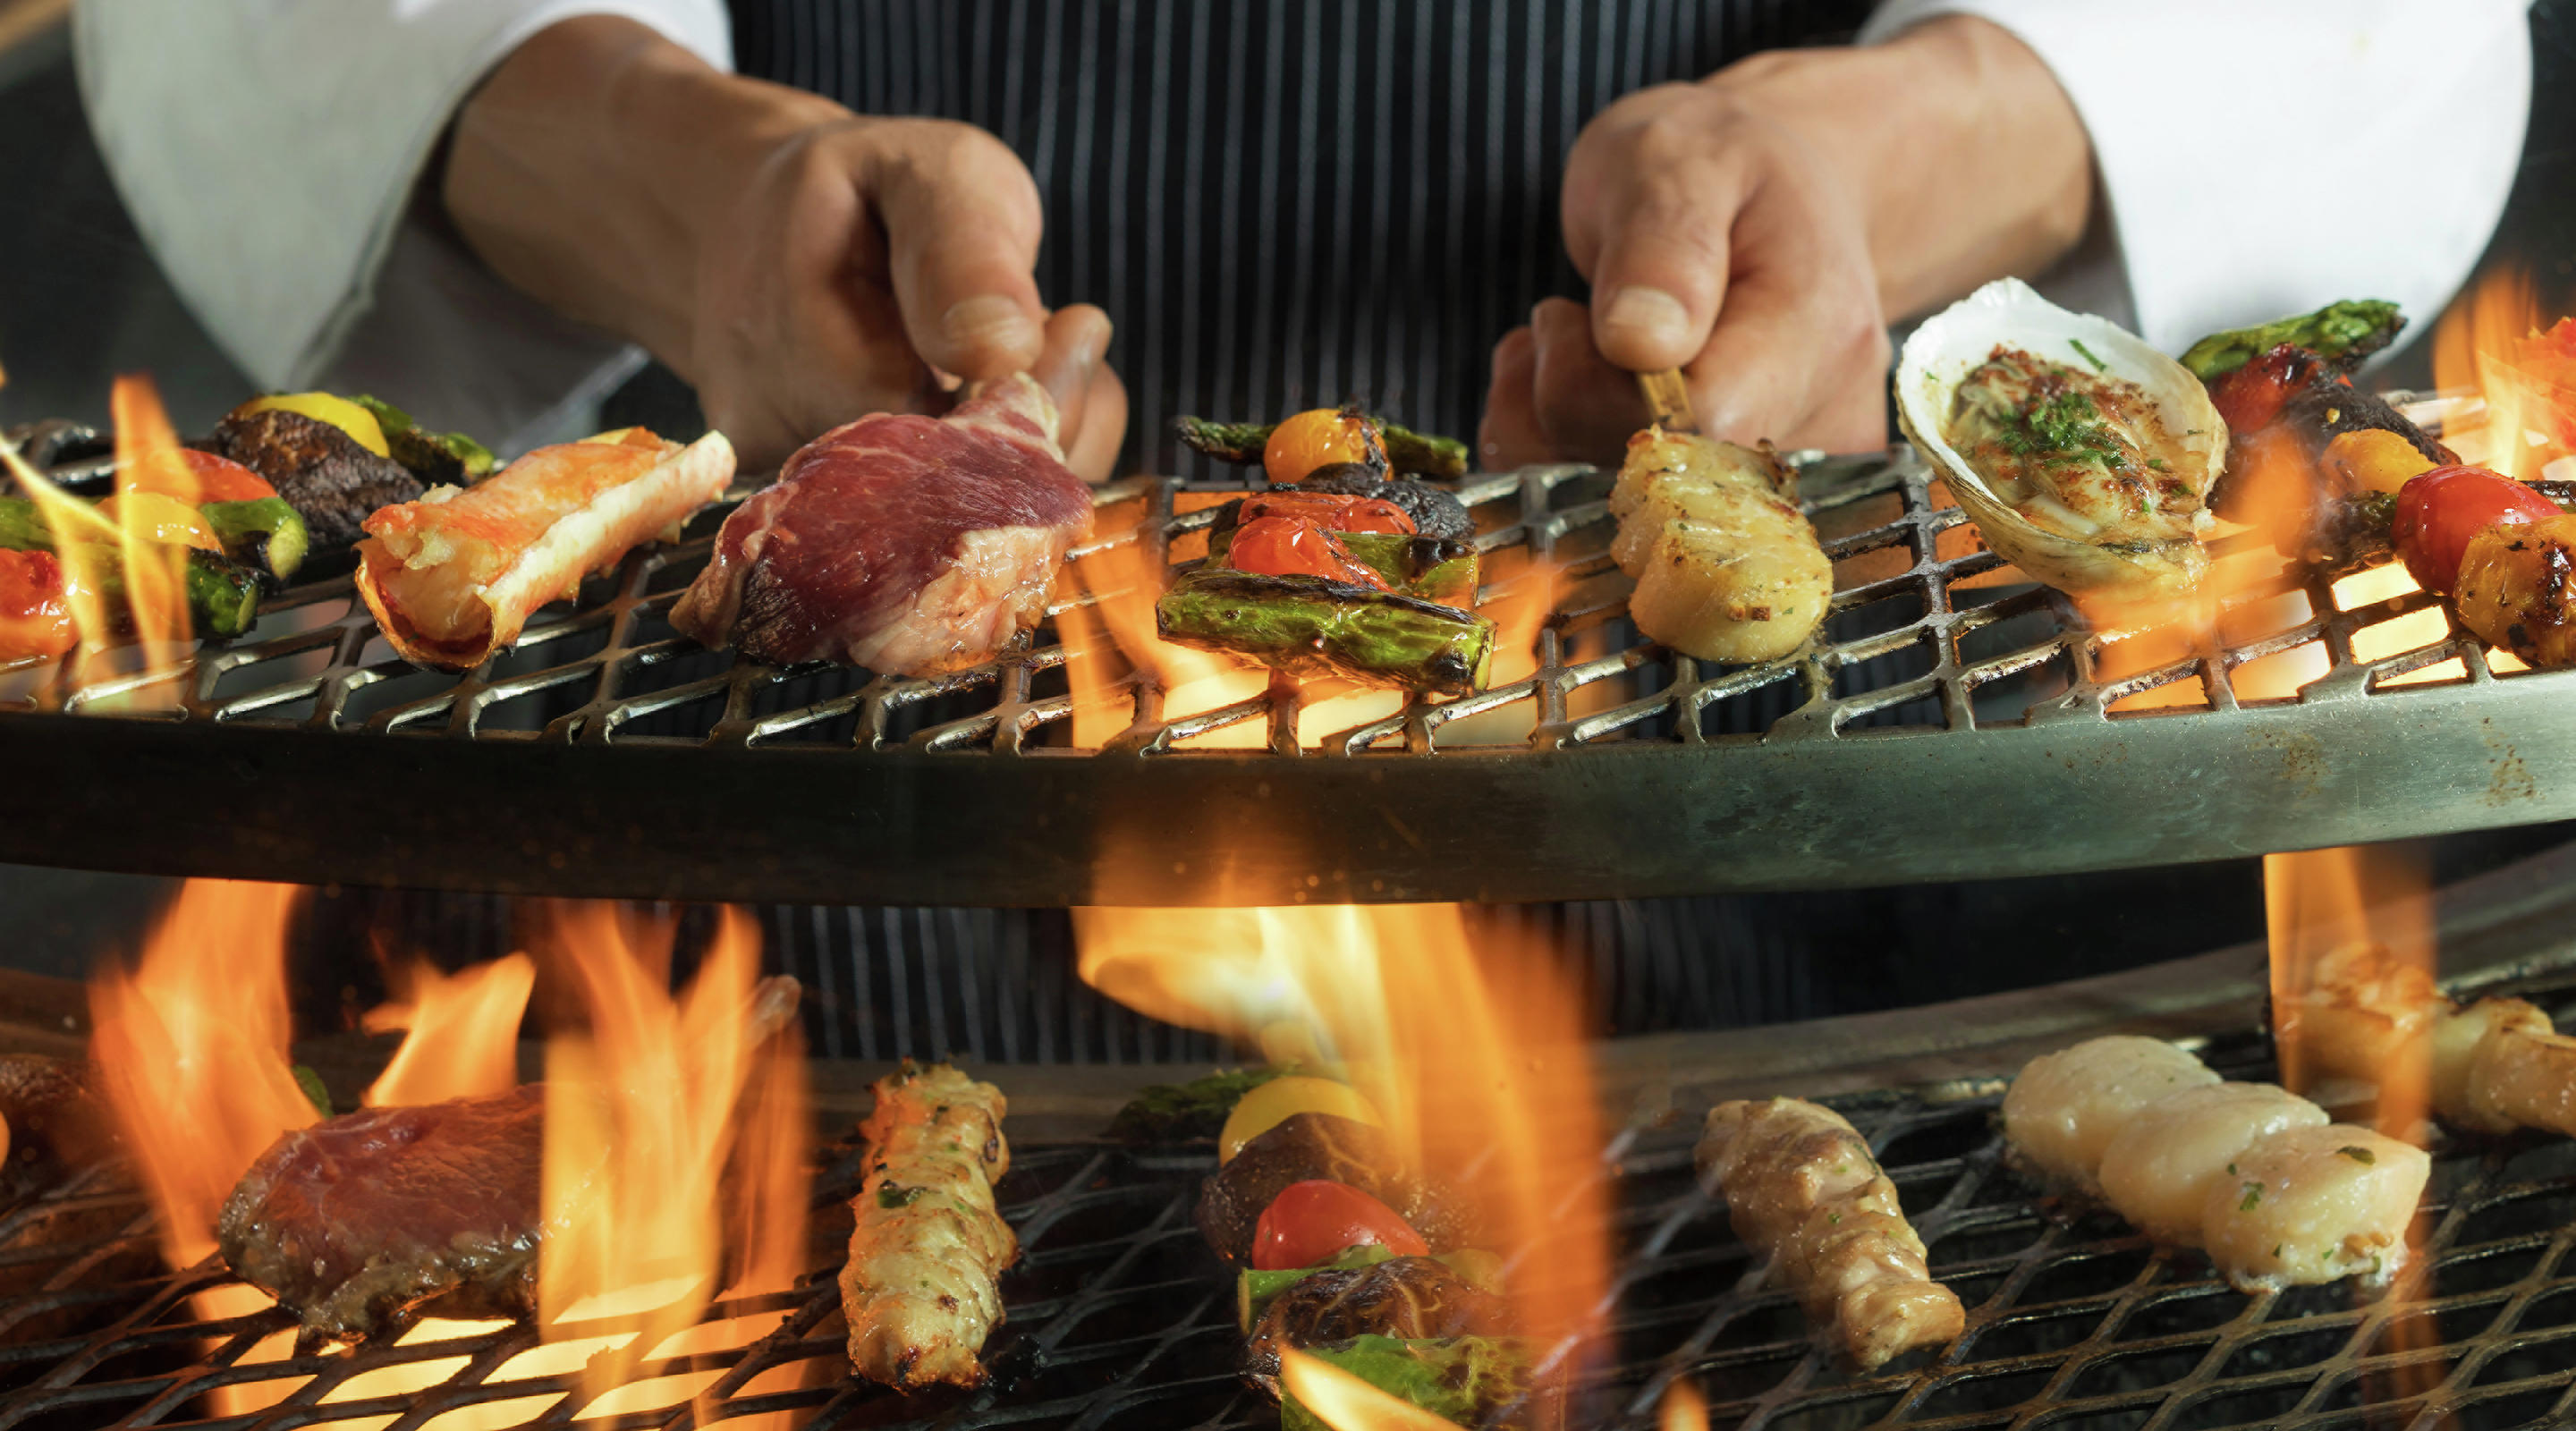 Chef hands on grill.